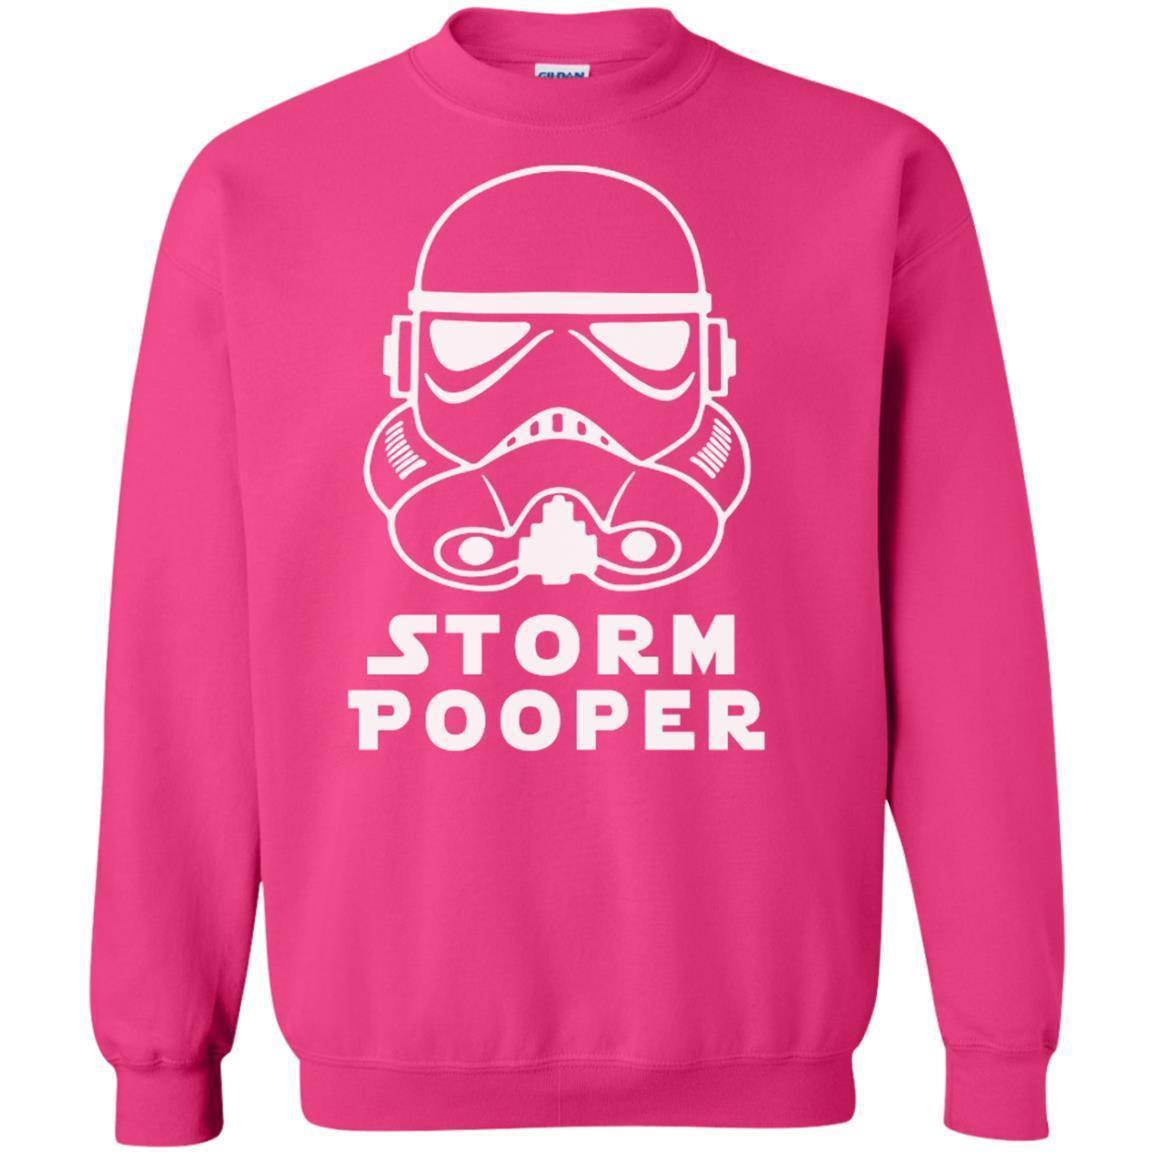 Get Here Stormpooper Funny Star Wars Shirts